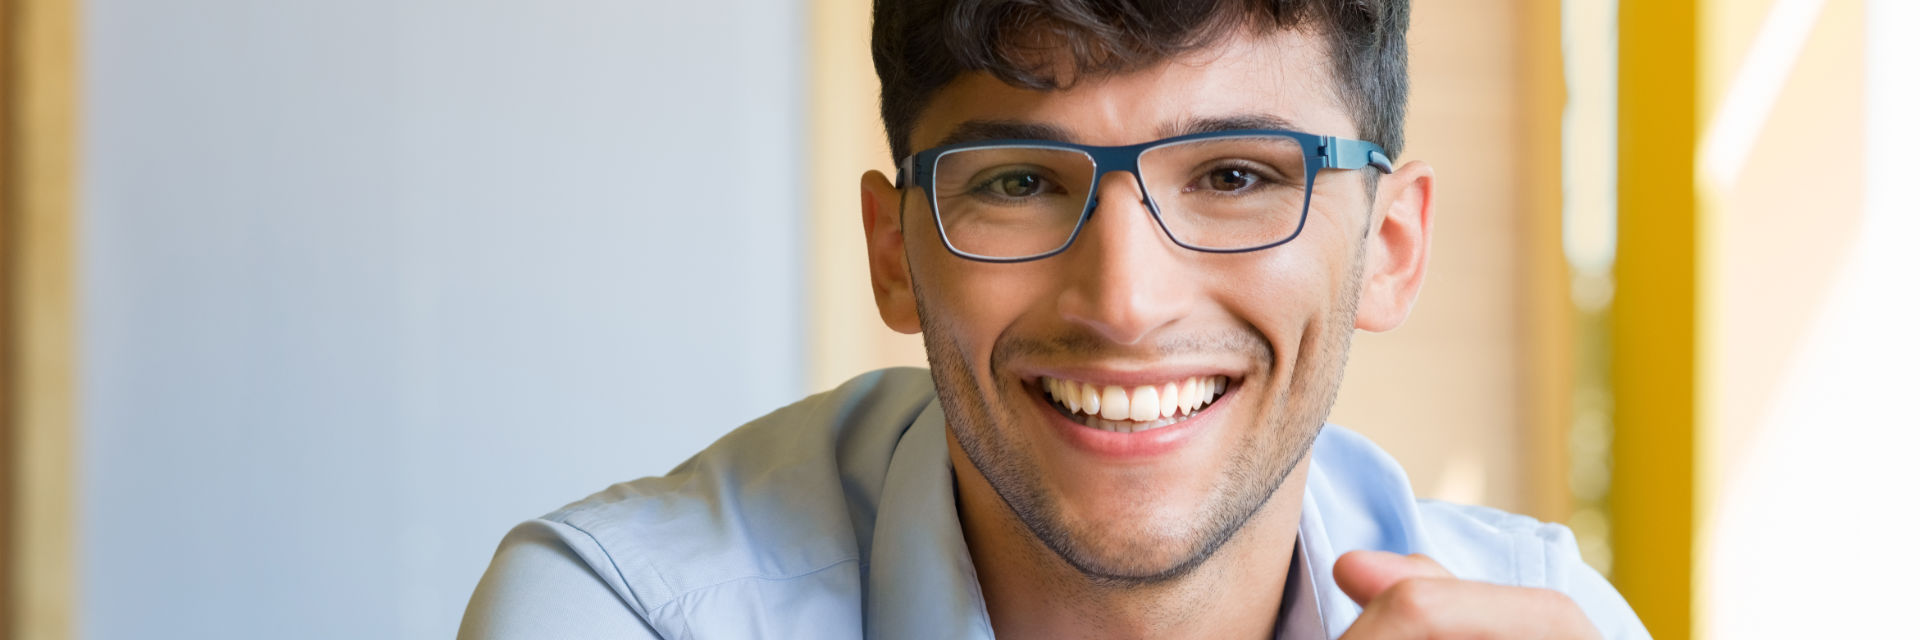 Happy young man wearing glasses showing nice teeth in his smile.